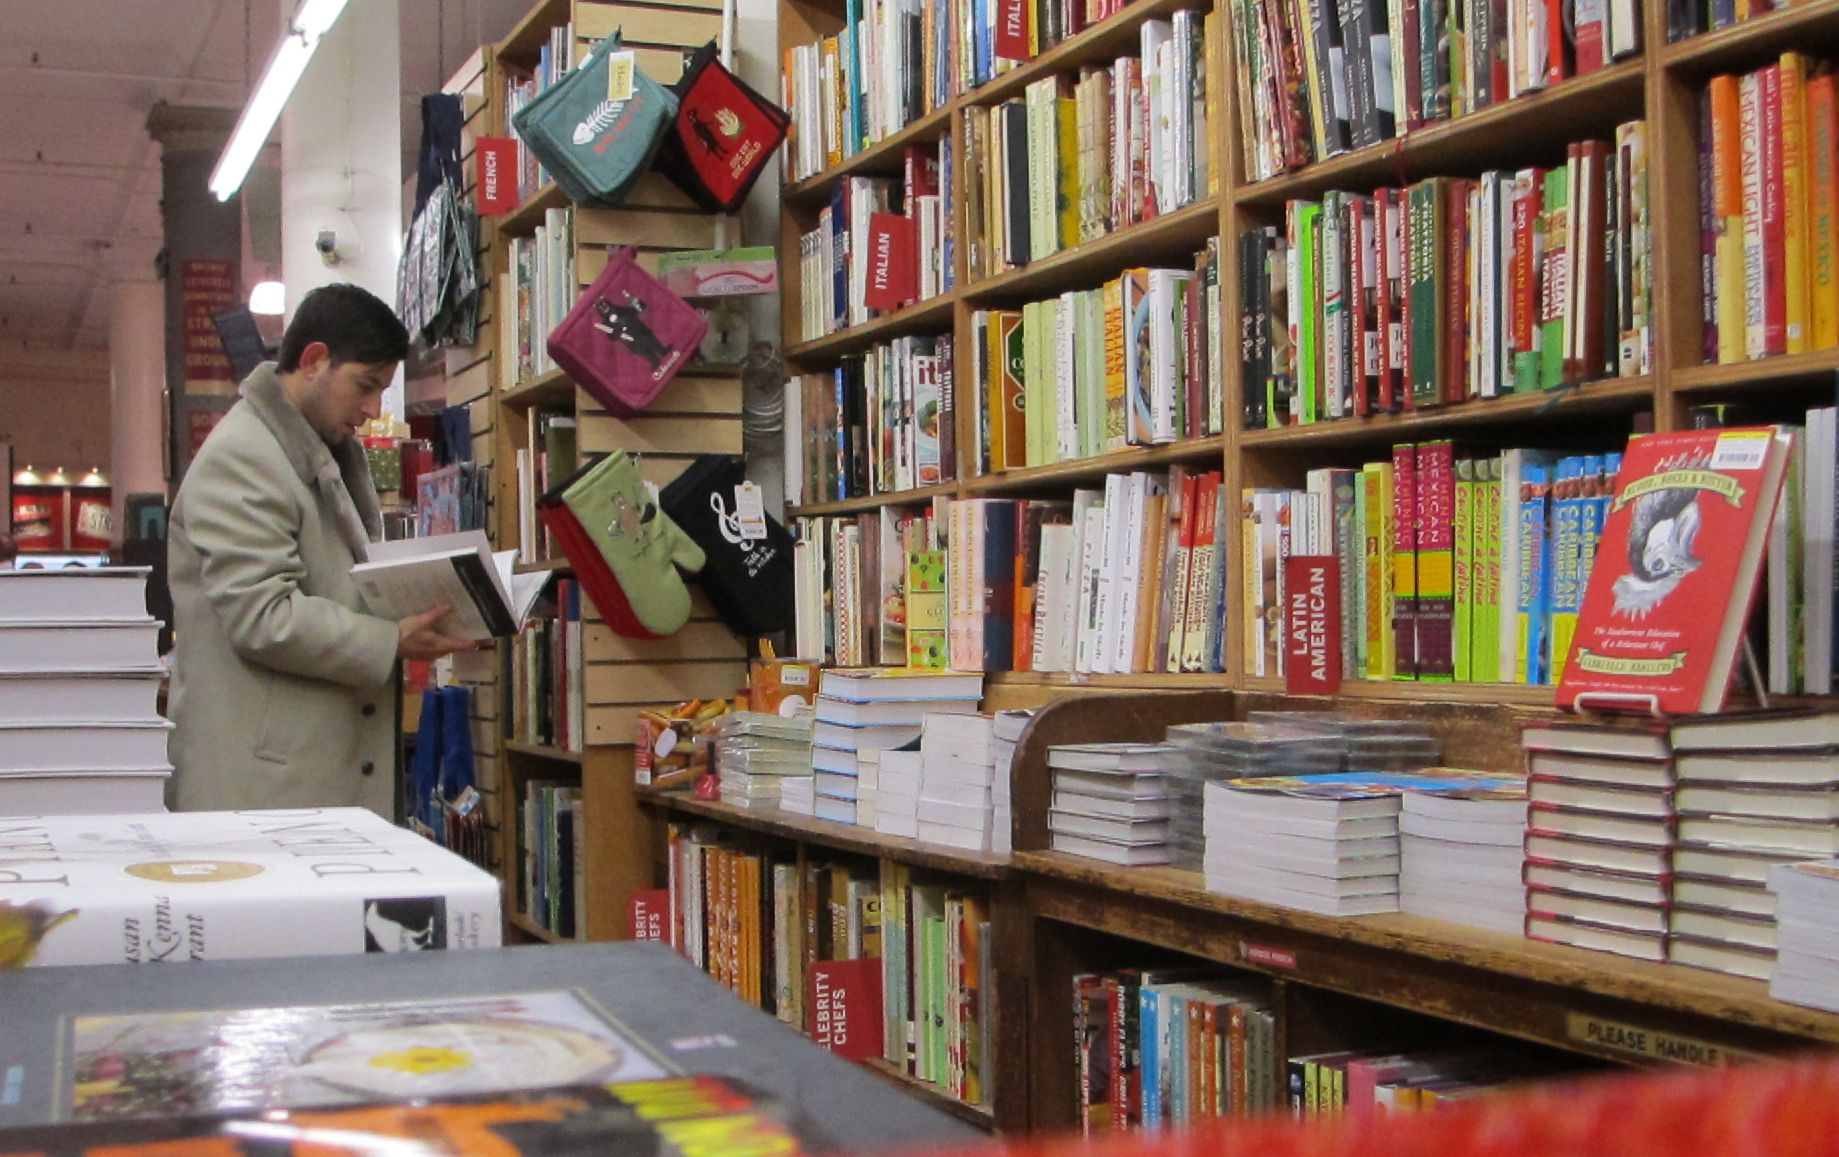 Scenes From A Bookstore IndieReader